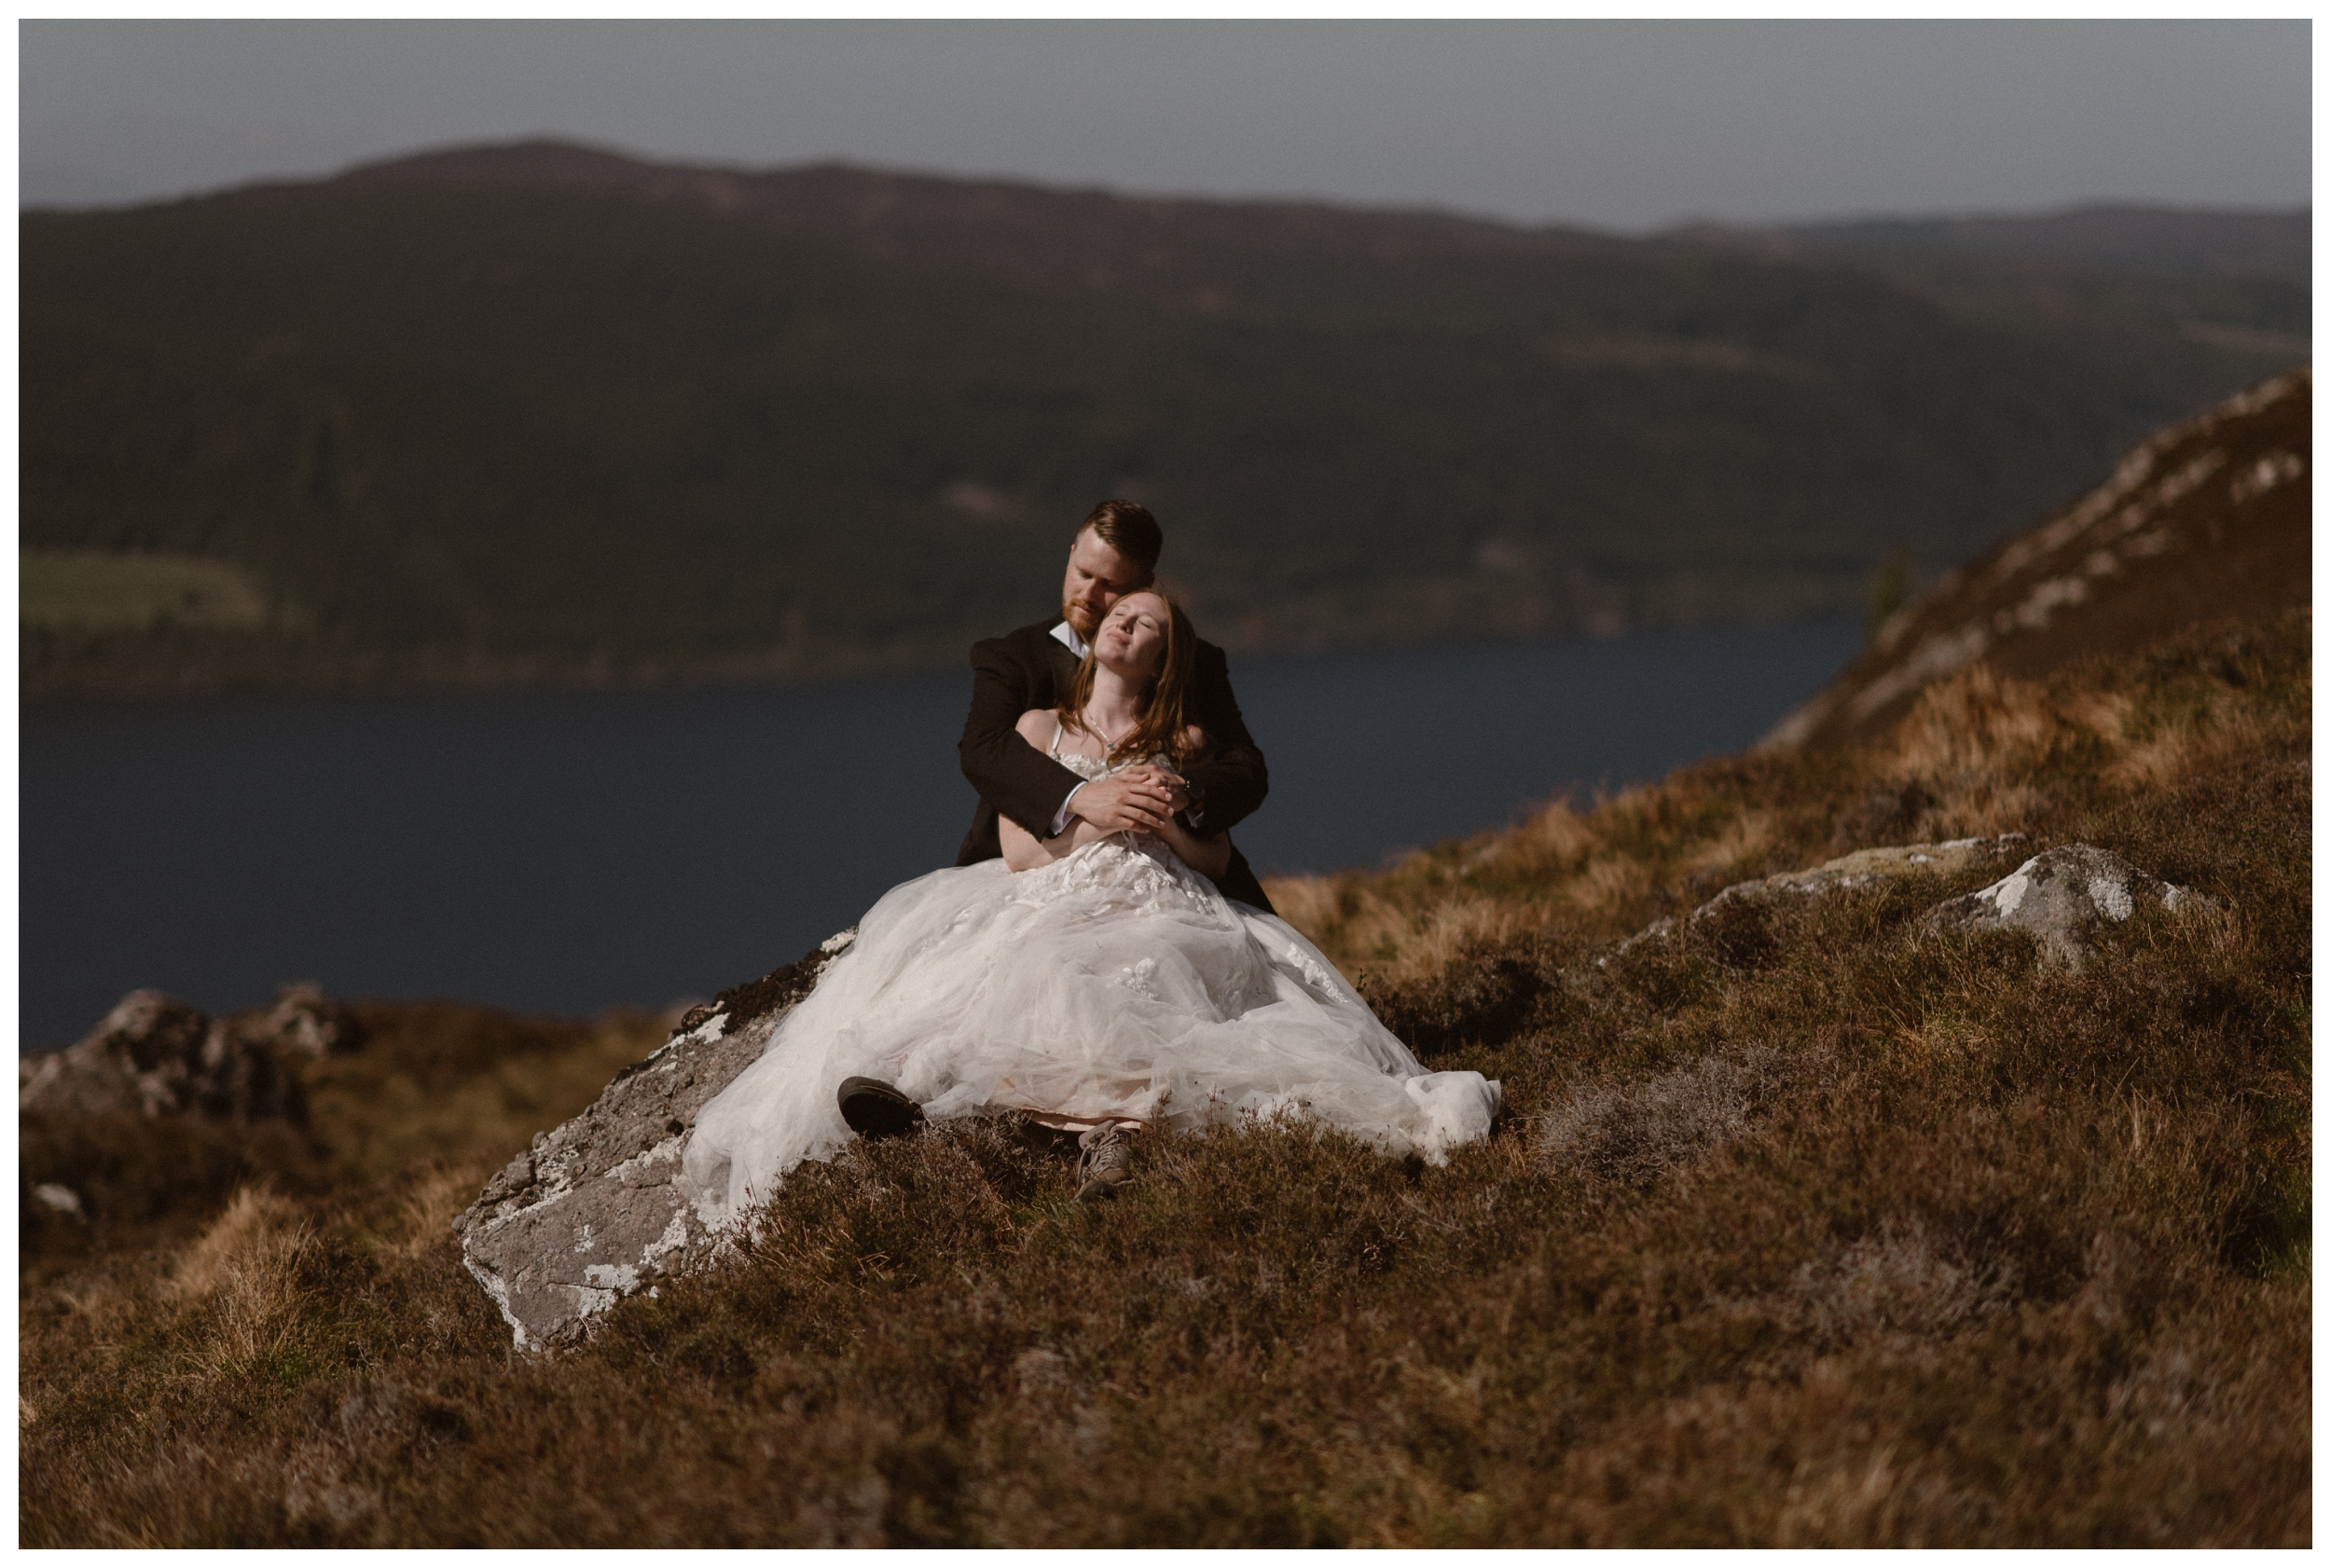 Elissa and Daniel share an embrace on a rock on the shores of Loch Ness in the Scottish Highlands following their destination elopement adventure. Photo by Maddie Mae, Adventure Instead.